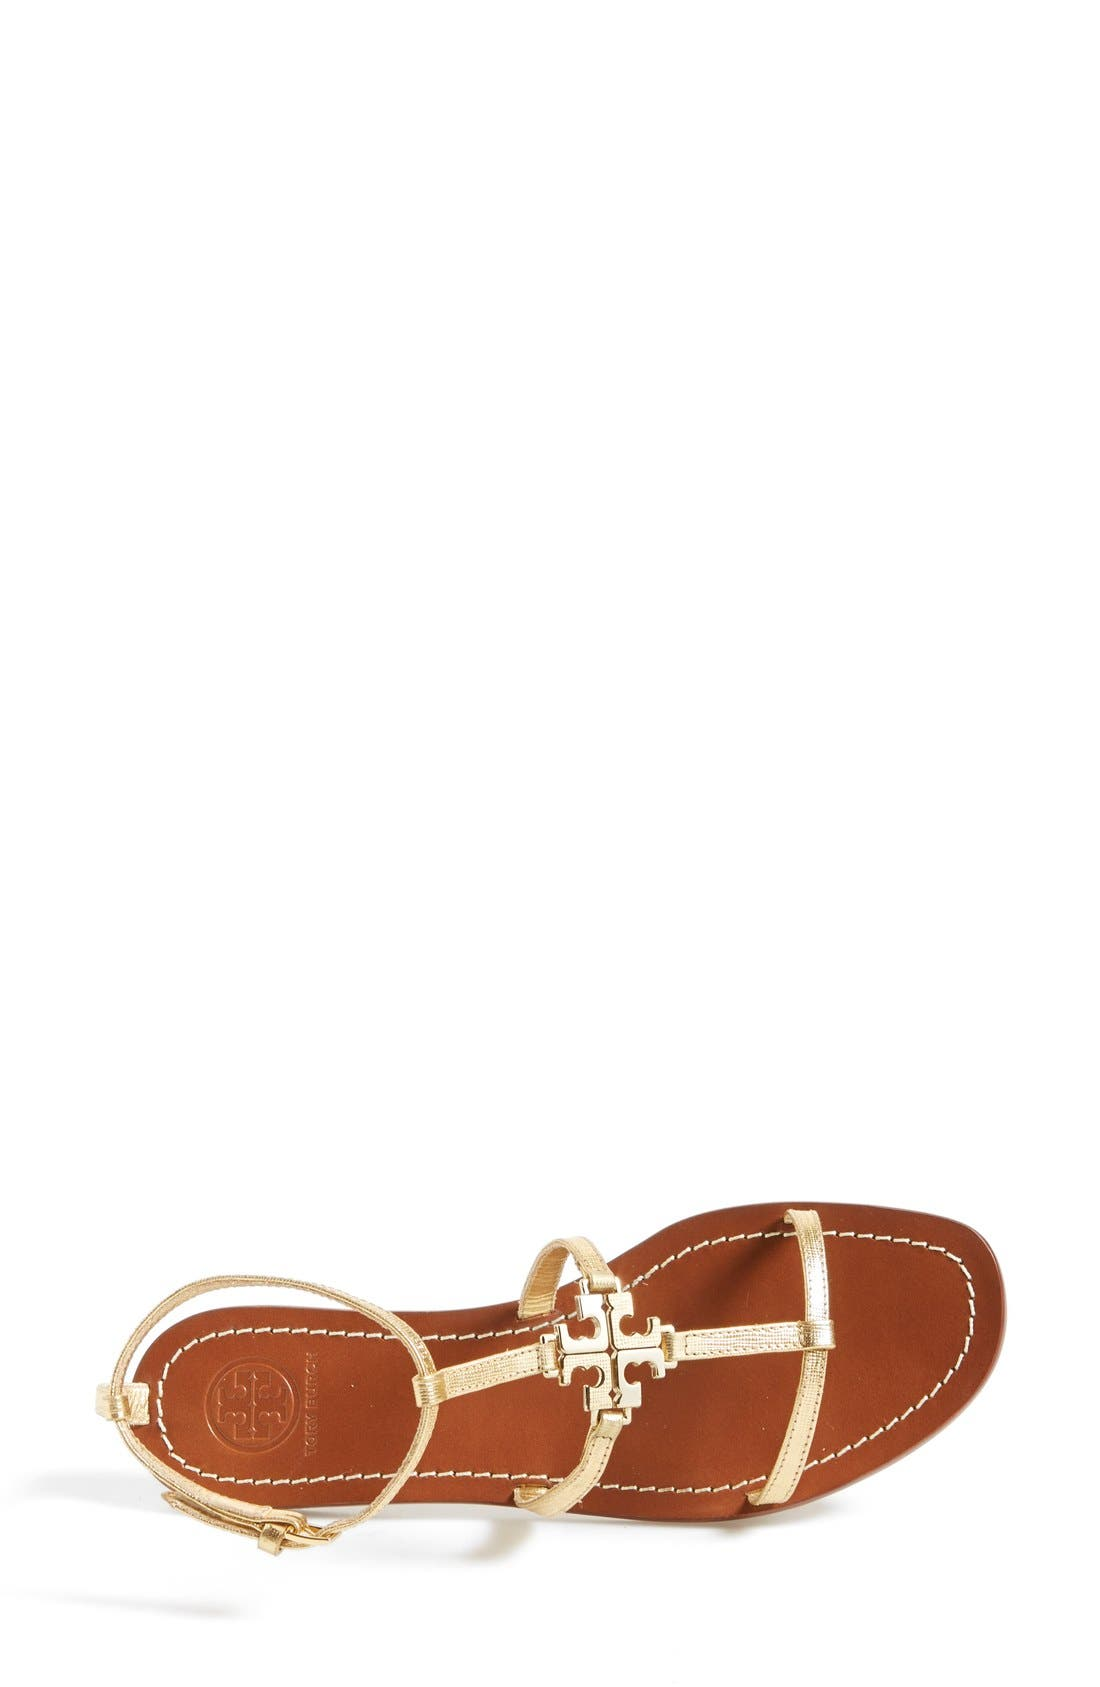 Alternate Image 3  - Tory Burch 'Lowell' Leather Sandal (Women)